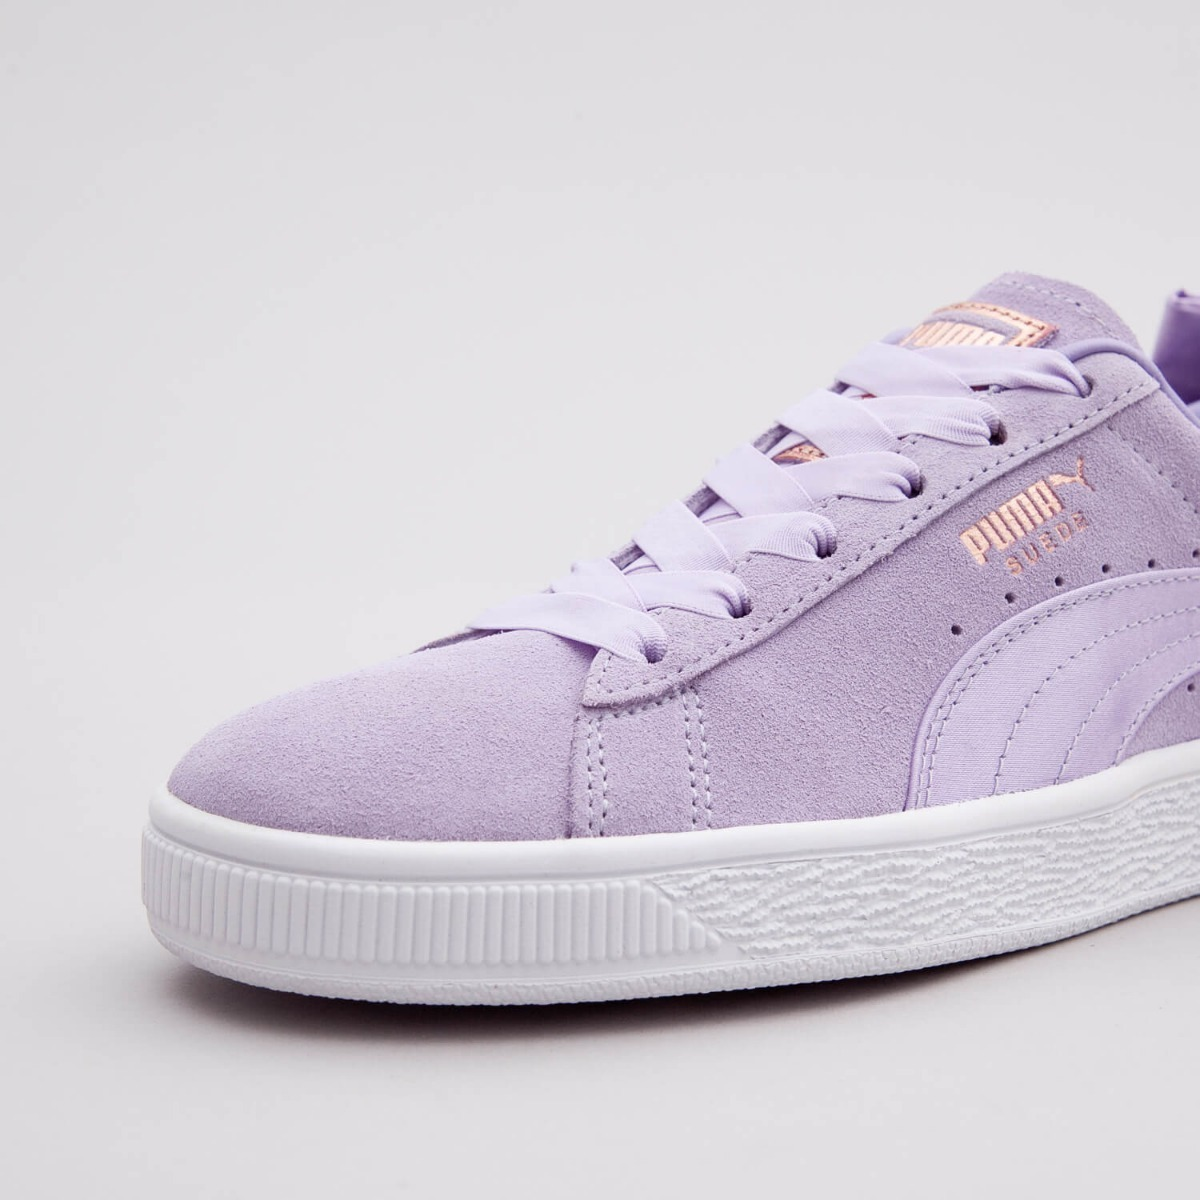 cheap for discount 55153 8a7dd Tenis Nña Puma Suede Bow Cara Delevingne Jr Dama Casuales